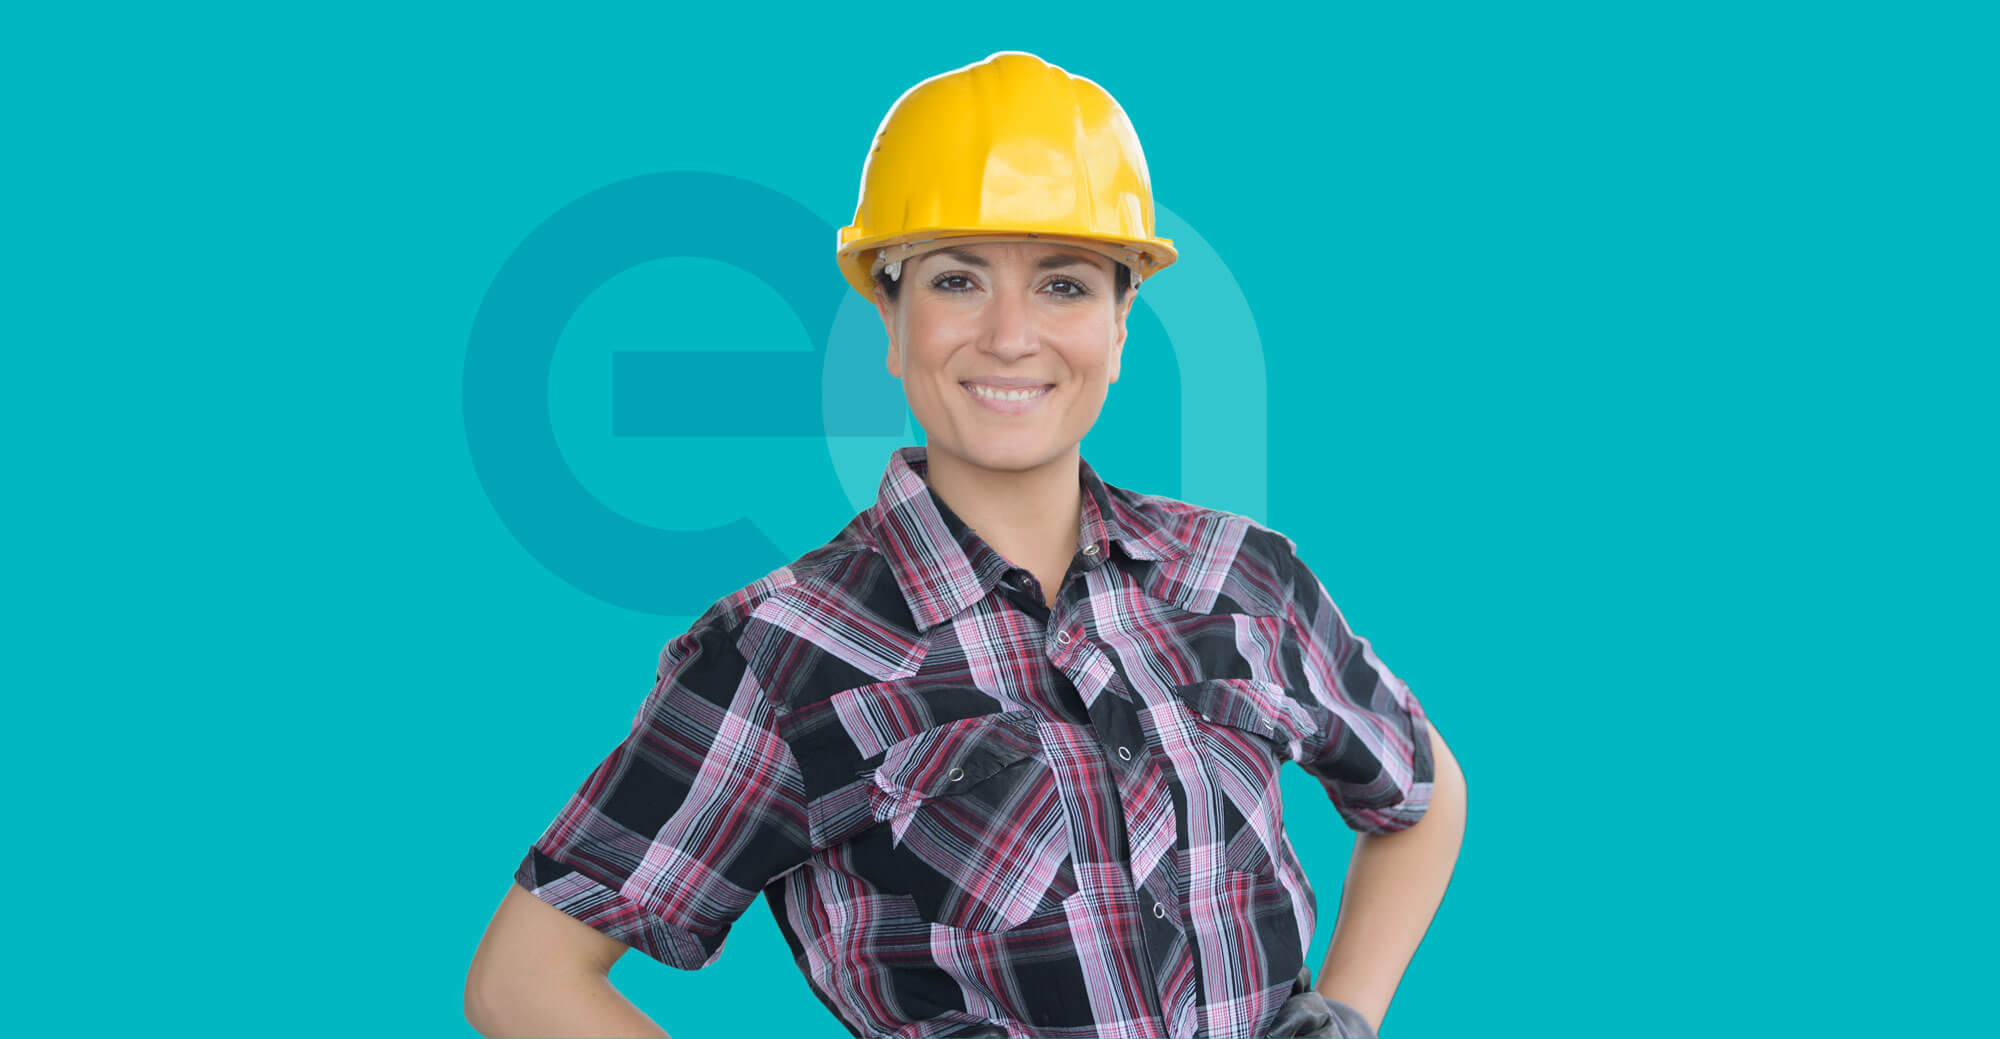 Female construction worker smiling with EA logo